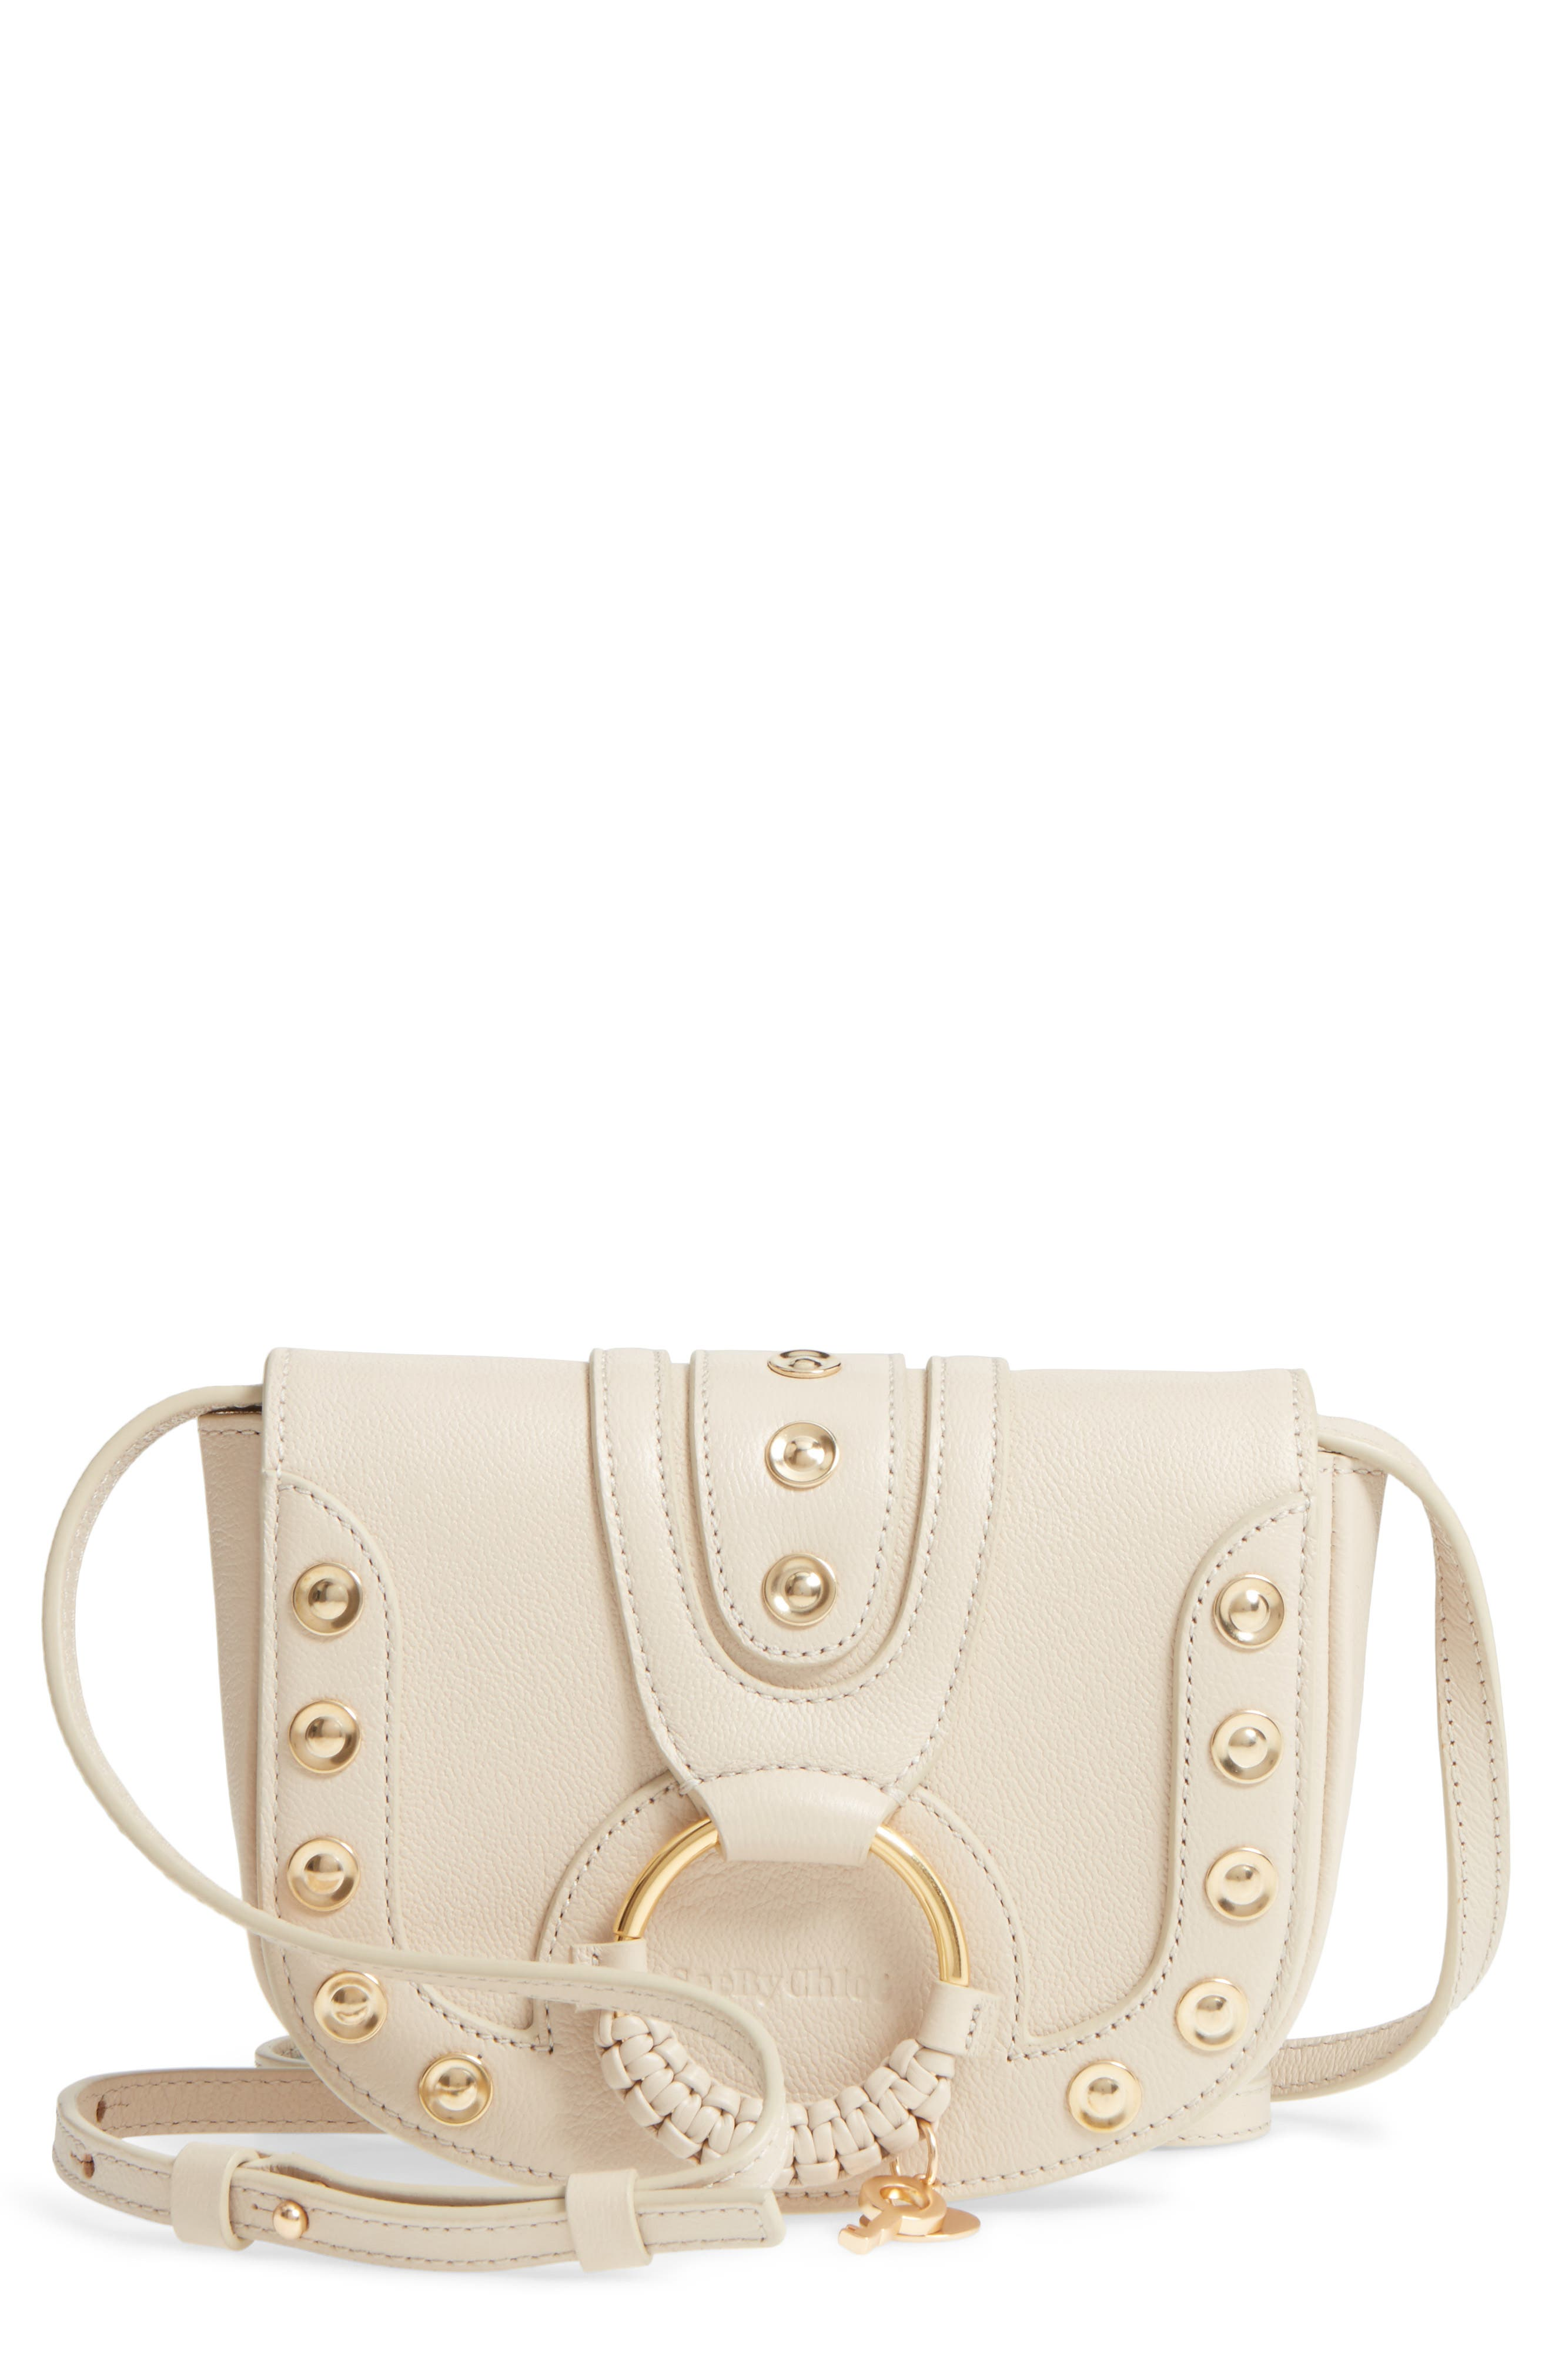 See by Chloé Mini Hana Studded Leather Crossbody Bag